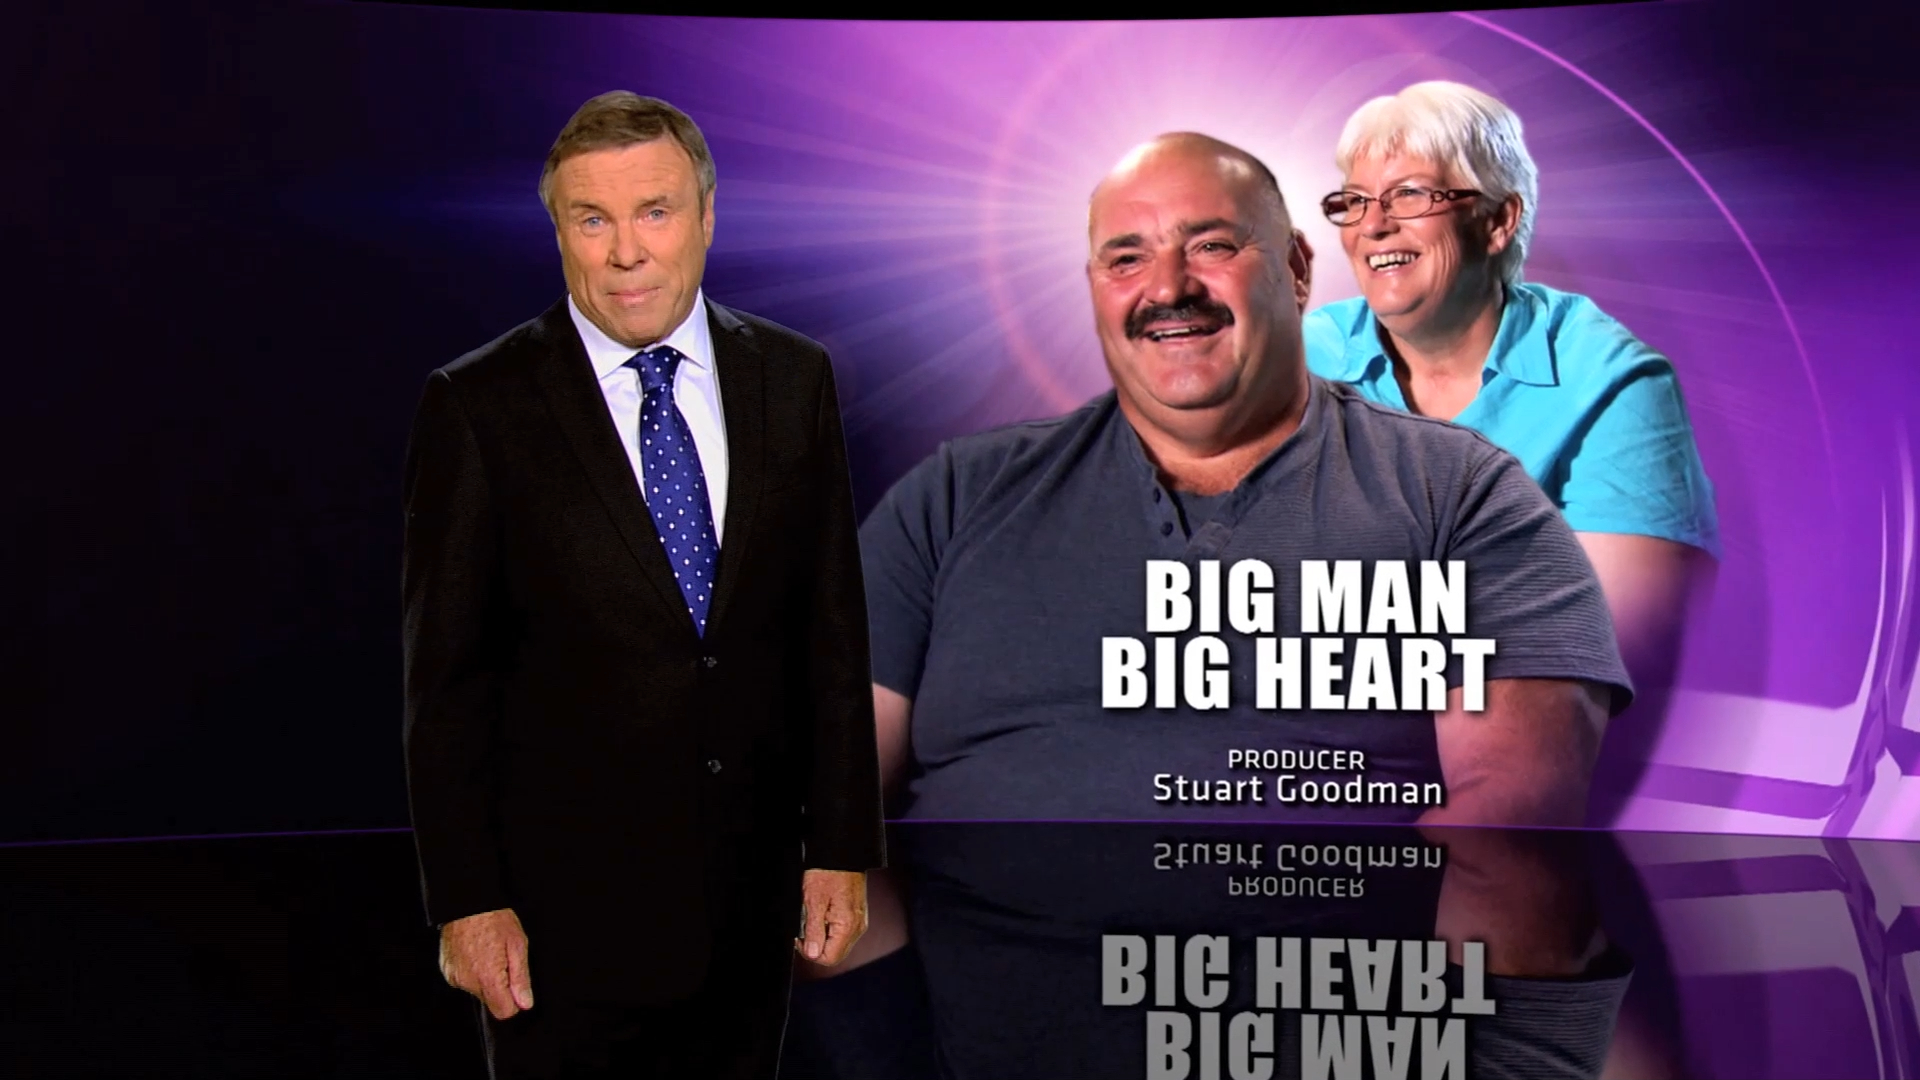 Big Man, Big Heart (2013)